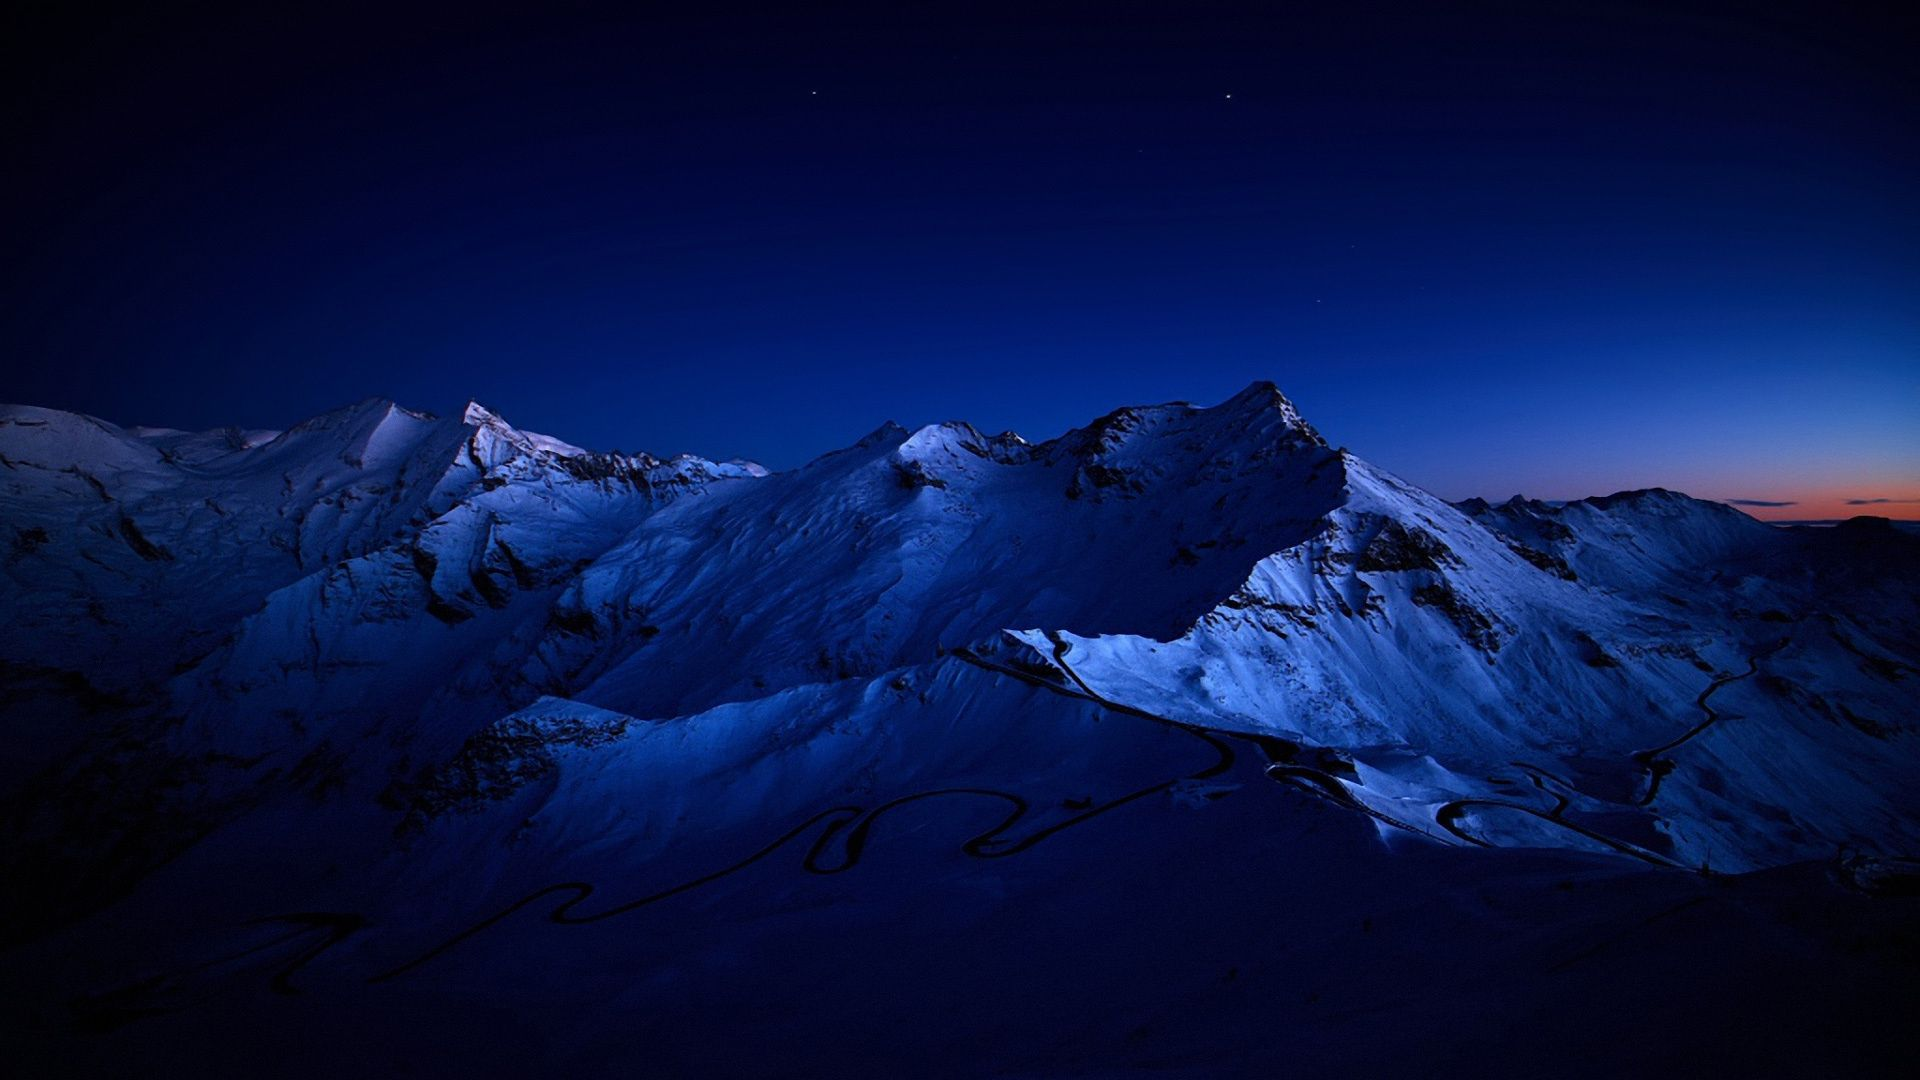 Night Mountain Wallpaper Hd On Wallpaper 1080p Hd Mountains At Night Mountain Wallpaper Mountain Pictures